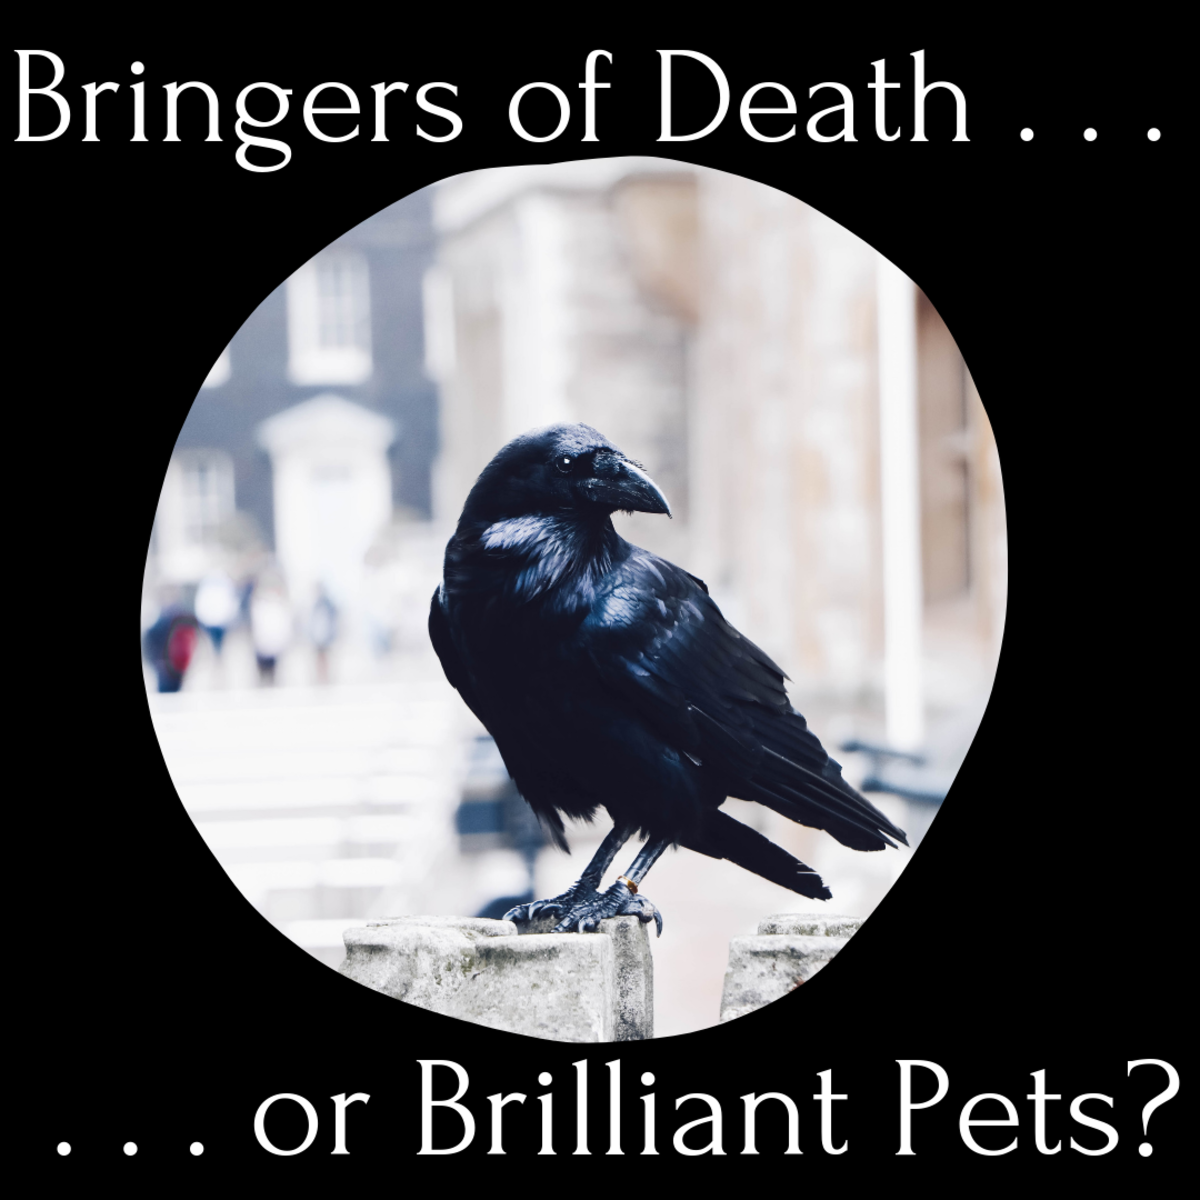 The Black Crow Superstition (What I Learned When Caring for a Crow)